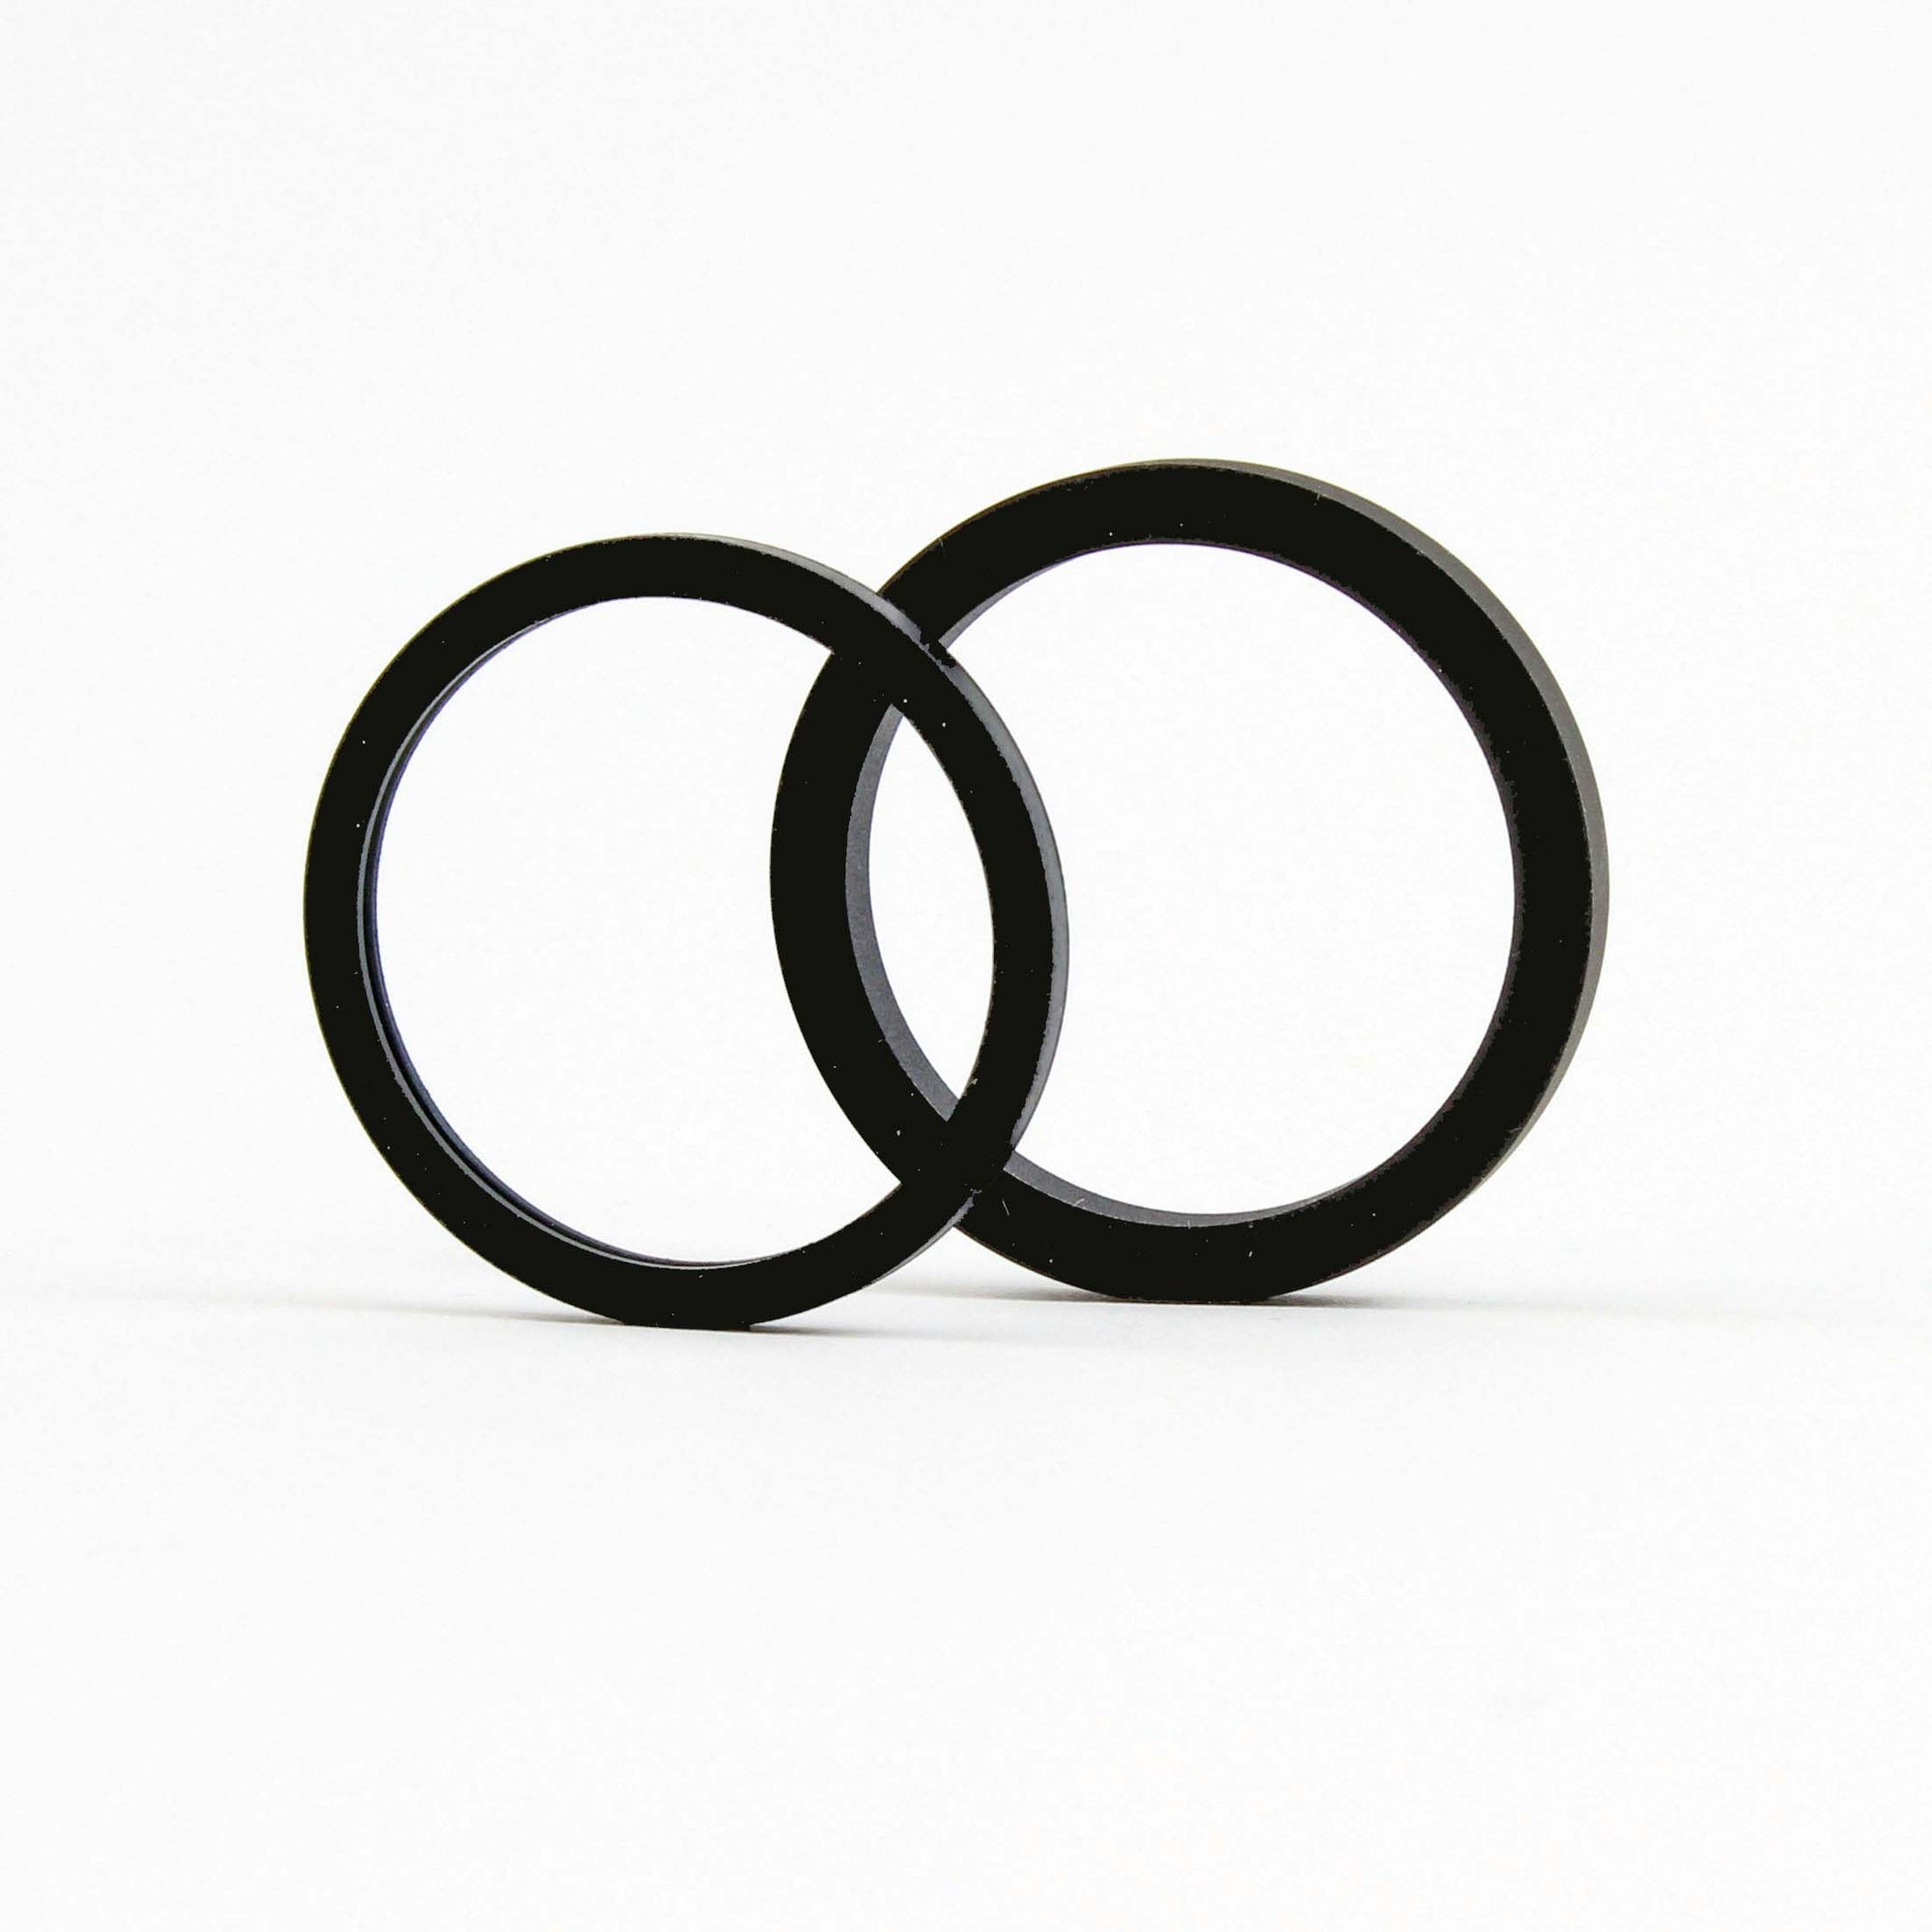 Internal Diameter (I.D) 25.4mm - Motorcycle Brake Caliper Seal set (Pressure seal - Dust Seal)